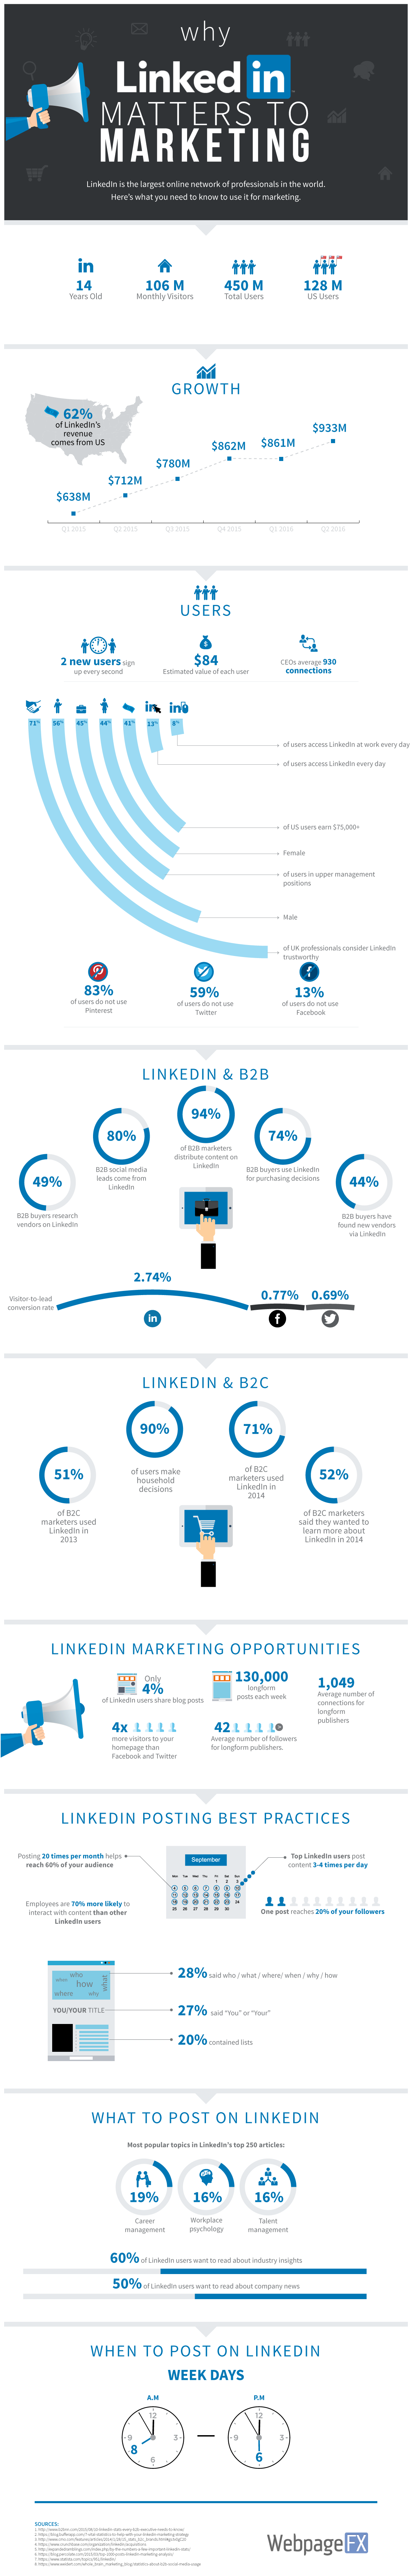 why-linkedin-matters-to-marketing-info